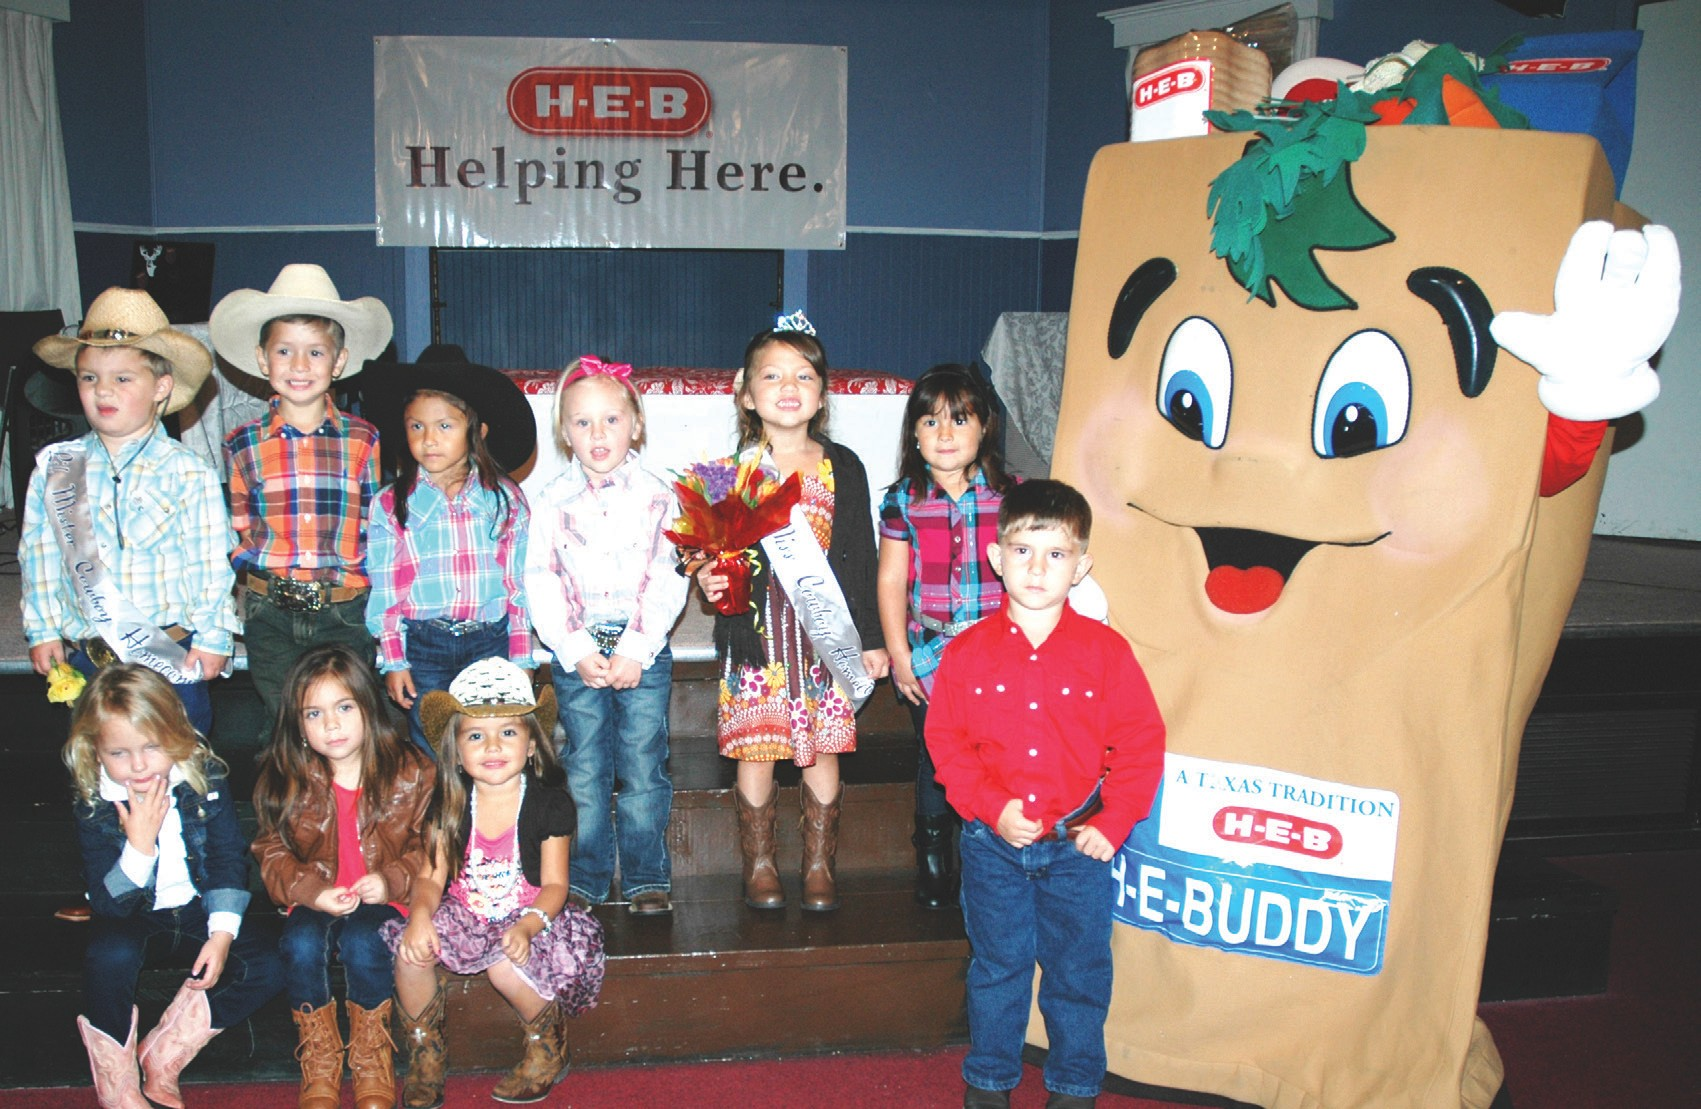 H-E-BUDDY gave out goodies to all the contestants of the Pleasanton Chamber of Commerce Lil' Mr. and Miss Cowboy Homecoming. Front row, left to right, are Grace Lageschulte, Lendon Garza, Maricela Lozano, and Kaden Holes. Back row, left to right are Lil' Mr. Cowboy Homecoming Killian Kaiser, Julian Ayala, Addison Gibson, Lillian Monzingo, Lil' Miss Cowboy Homecoming Laney Aguilar and Azana Sendejo.